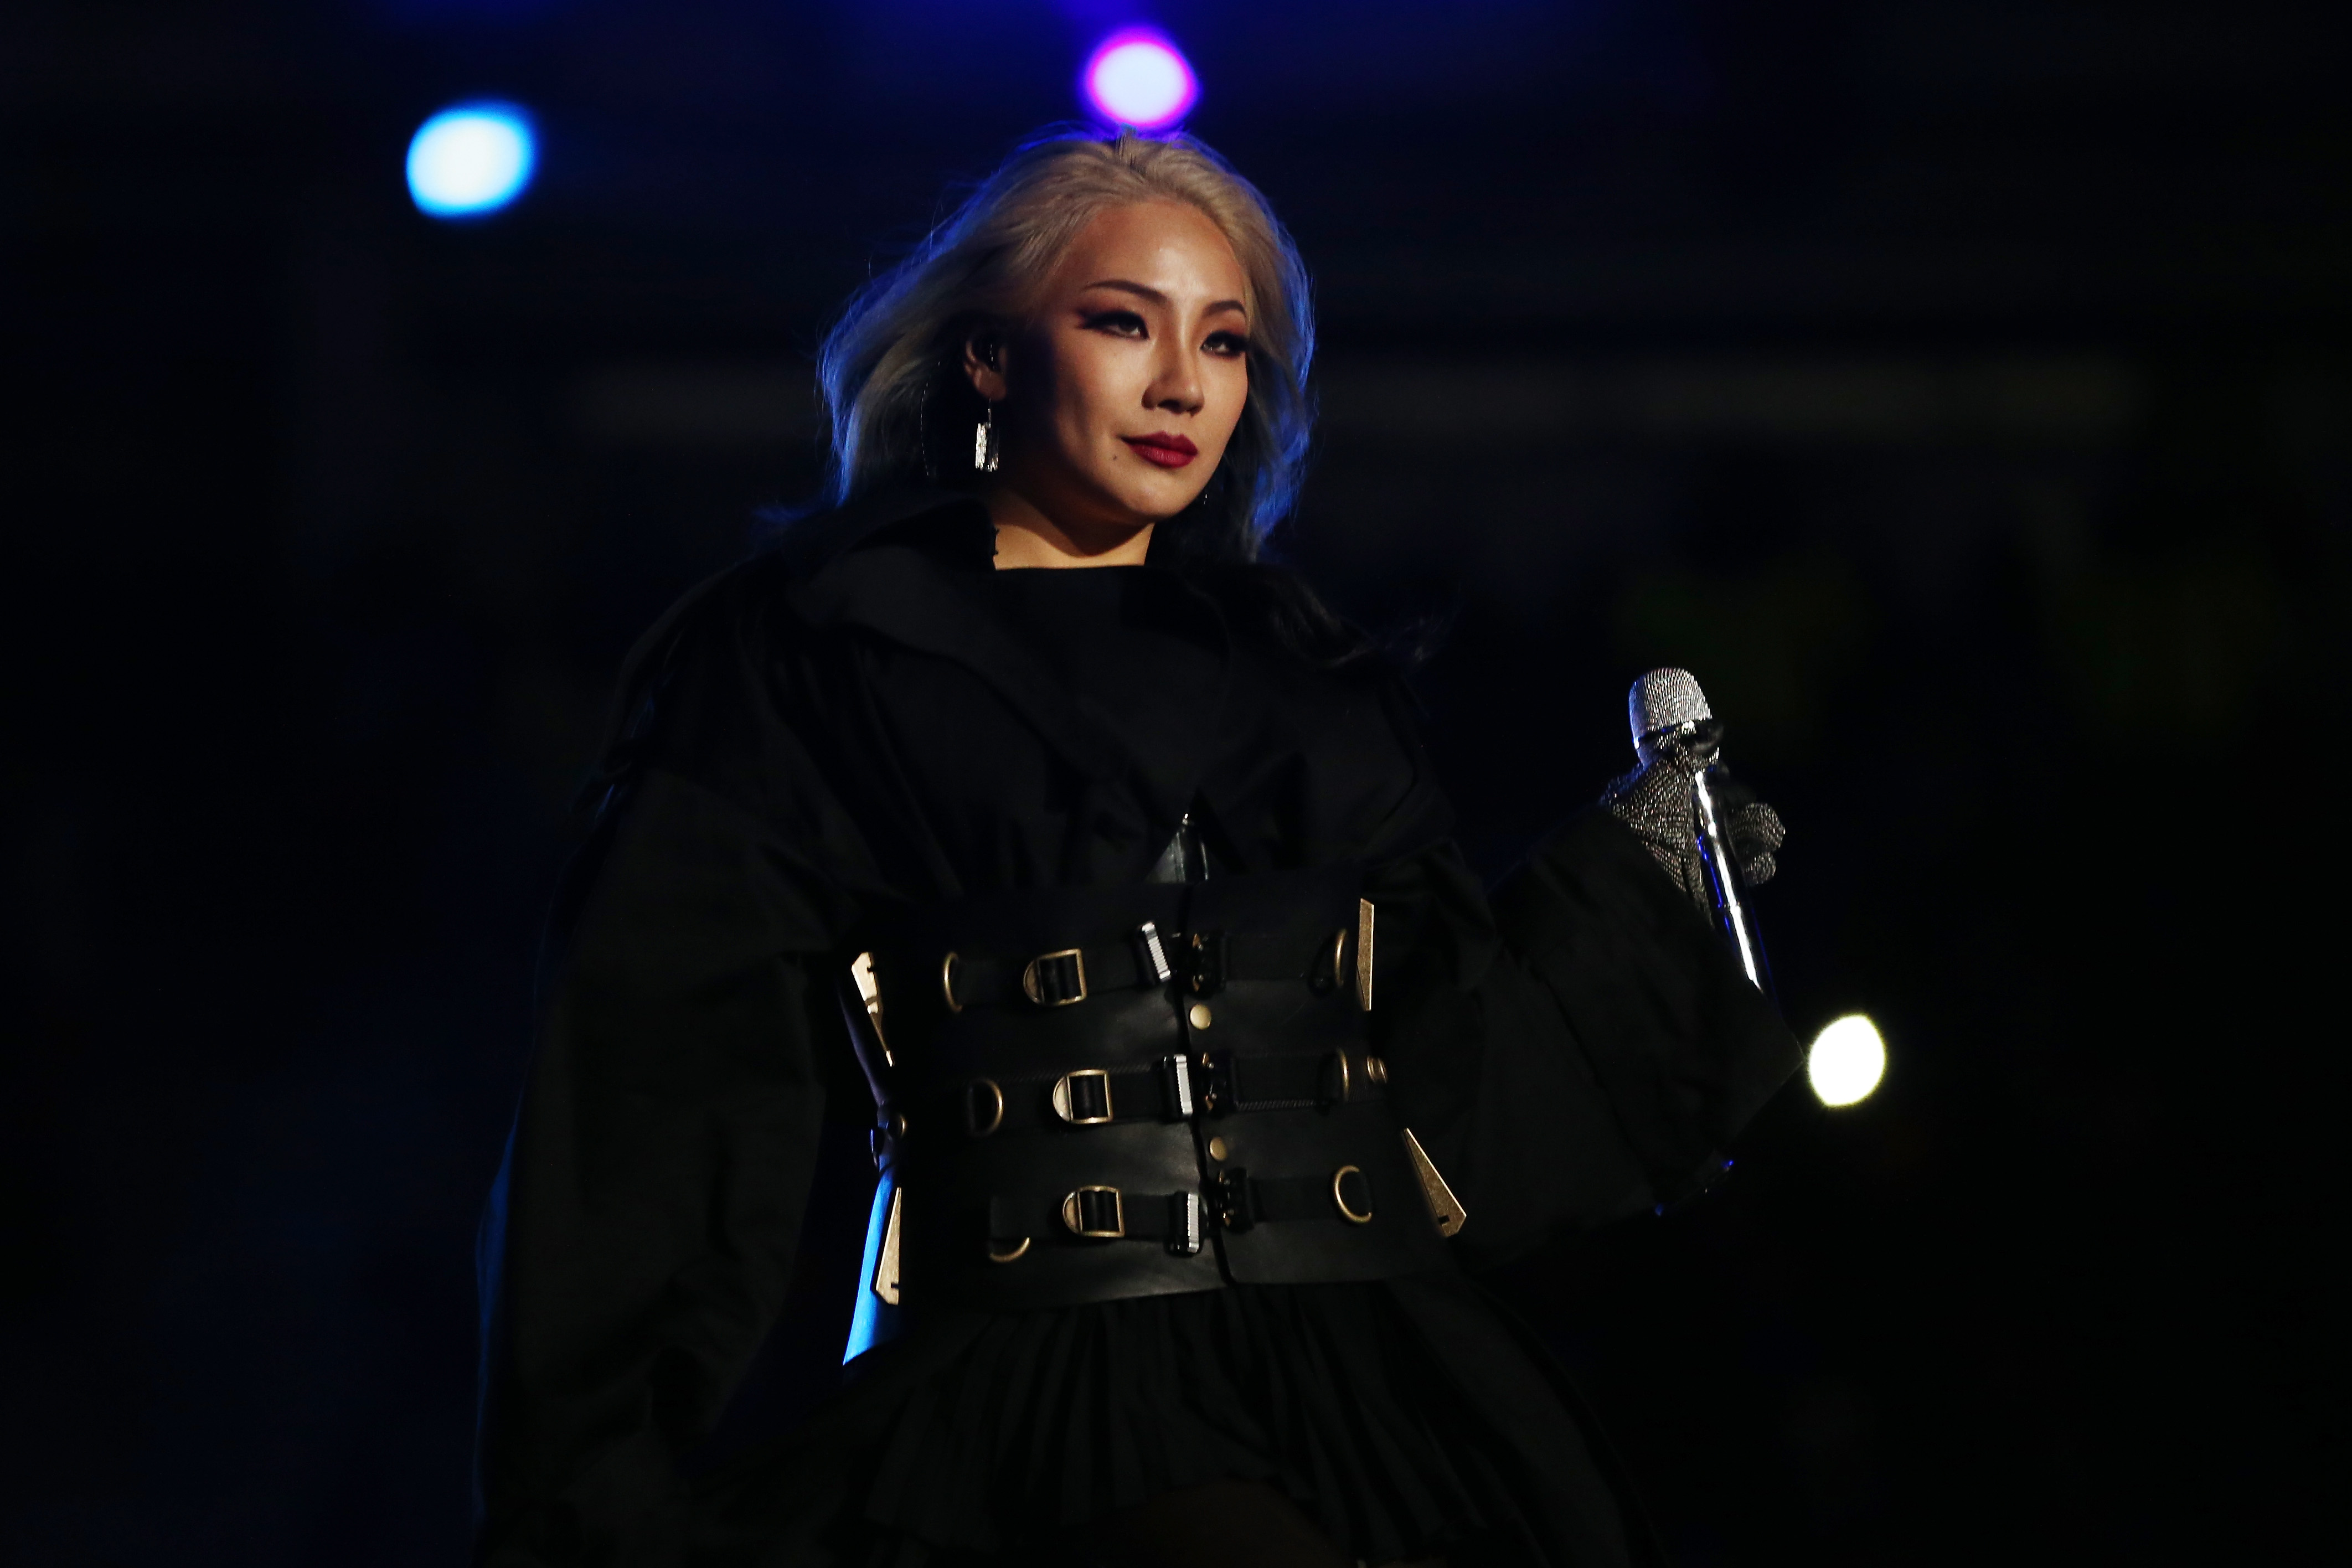 South Korean K-Pop singer CL performs during the Closing Ceremony of the PyeongChang 2018 Winter Olympic Games.